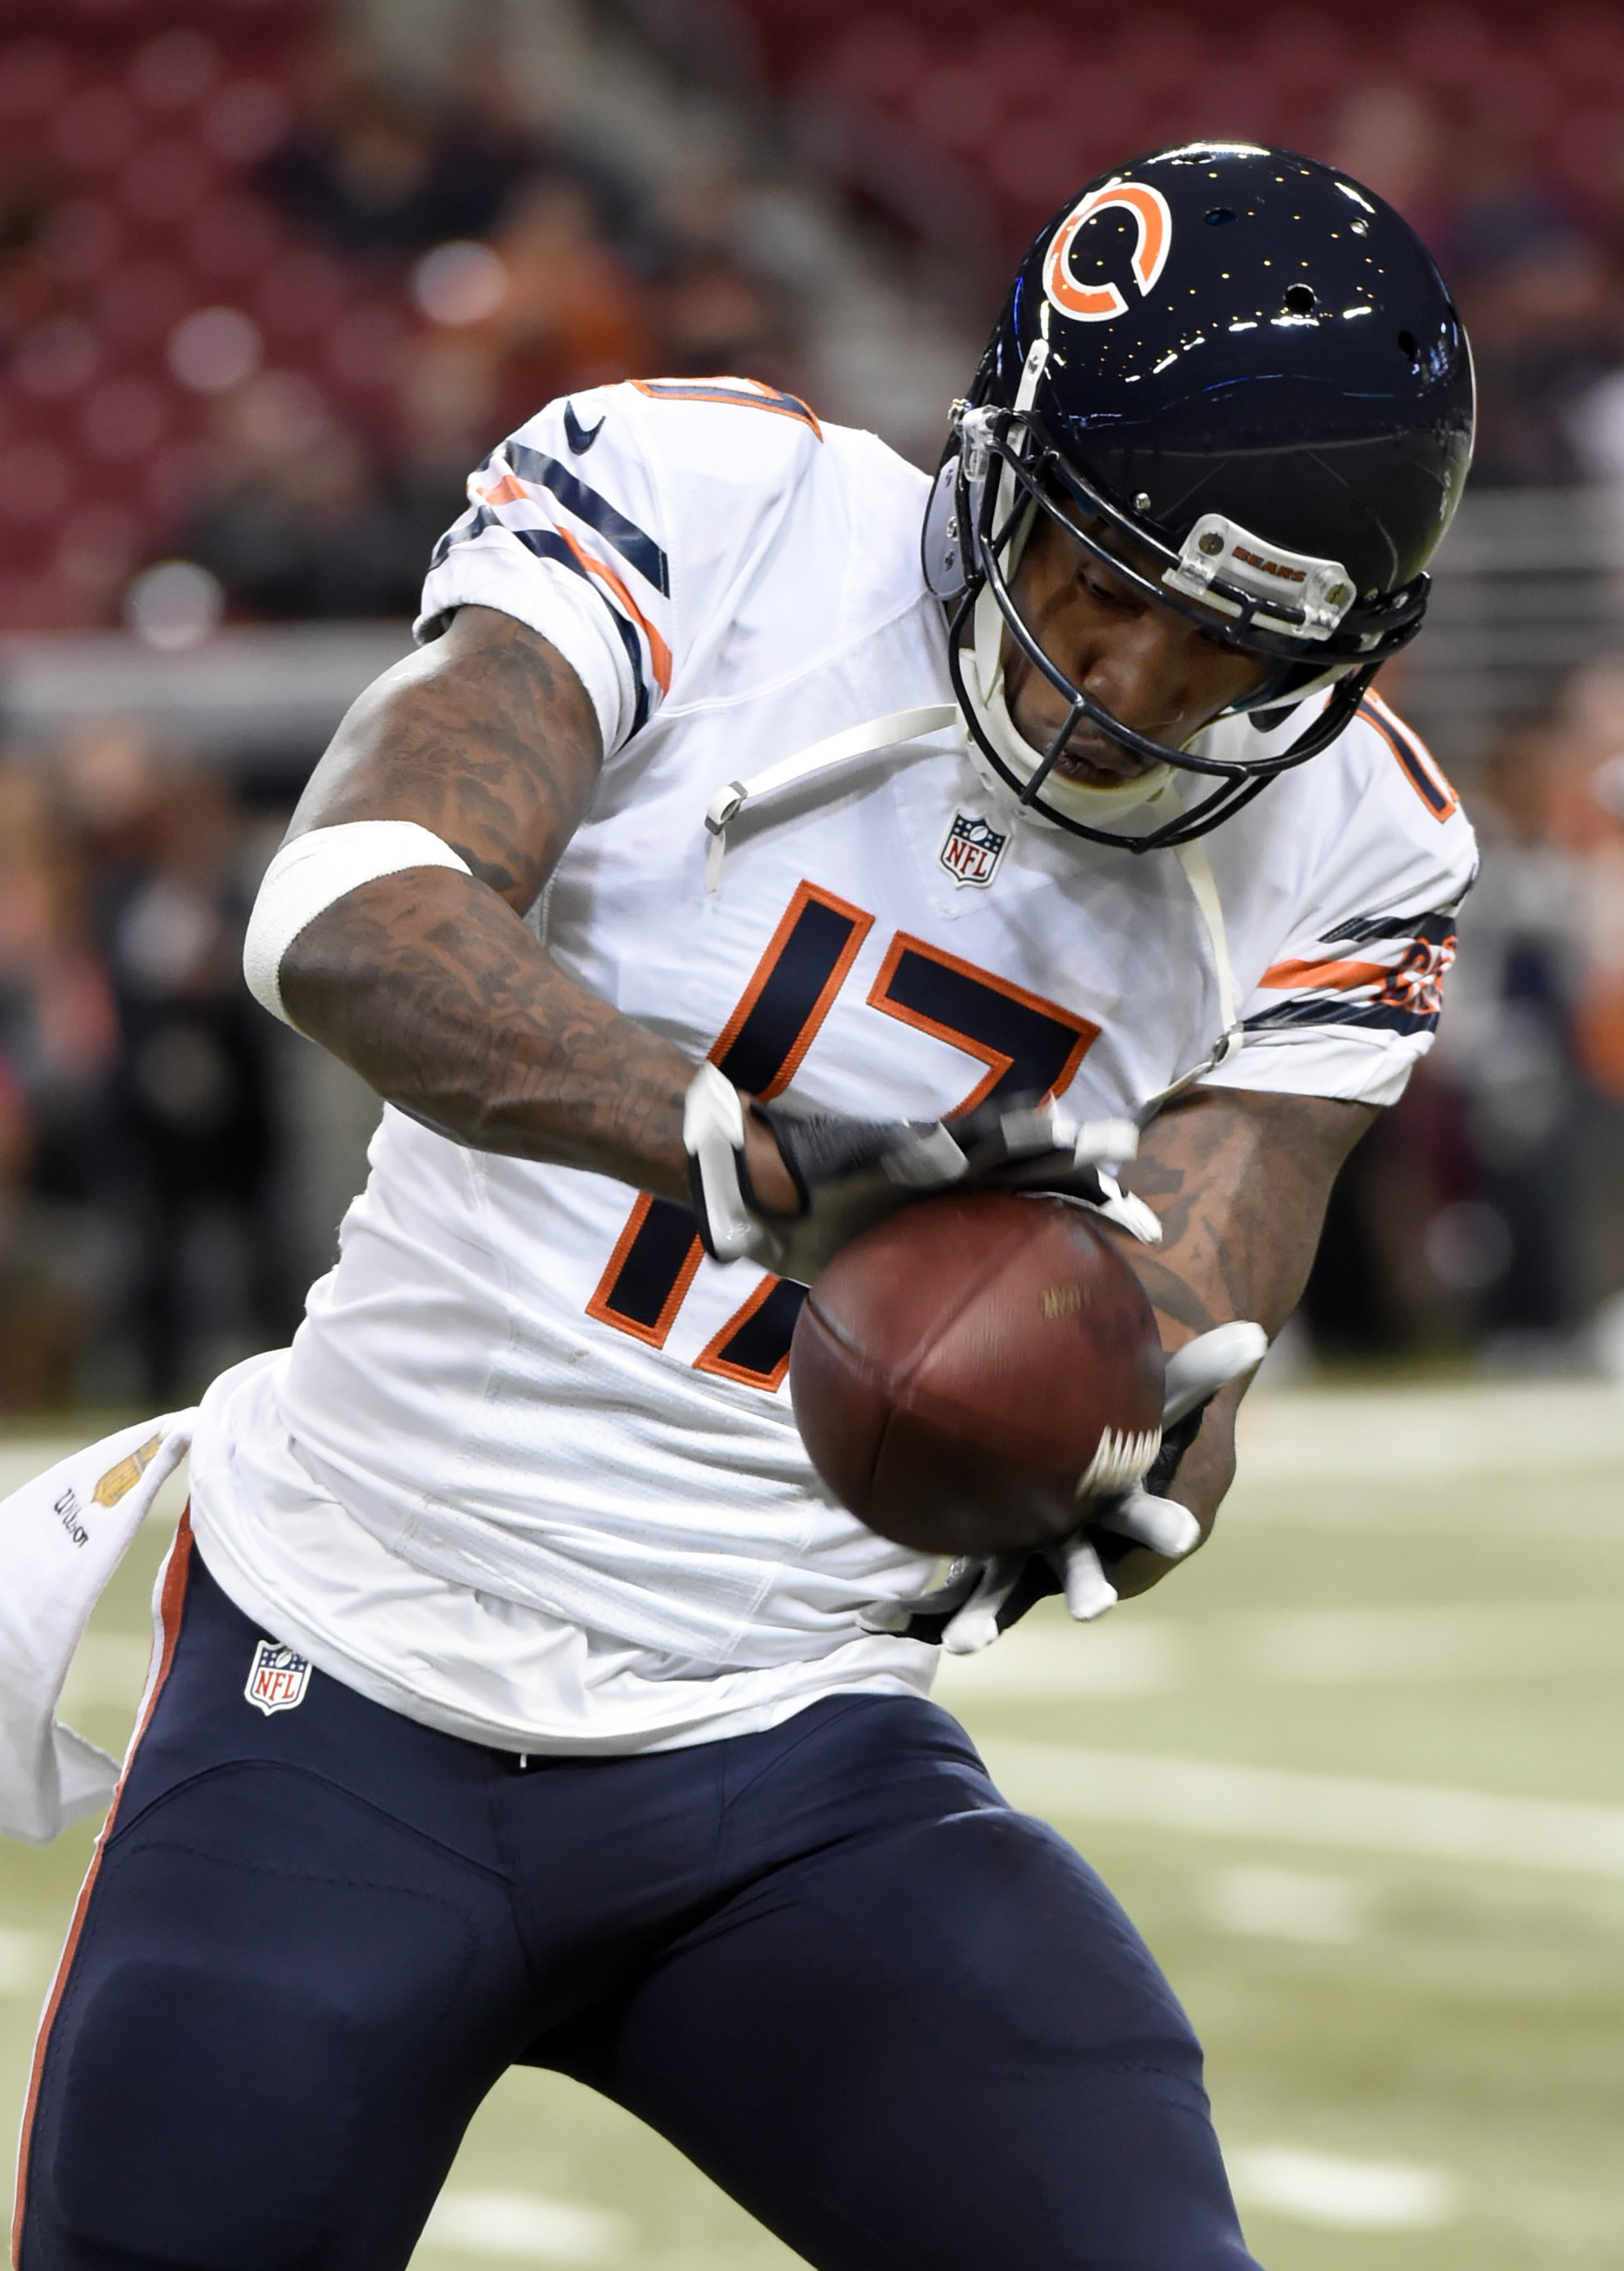 In this Sunday, Nov. 15, 2015 photo, Chicago Bears wide receiver Alshon Jeffery warms up before the start of their NFL football game with the St. Louis Rams in St. Louis. The Bears have placed the franchise tag on top receiver Jeffery. With the move annou